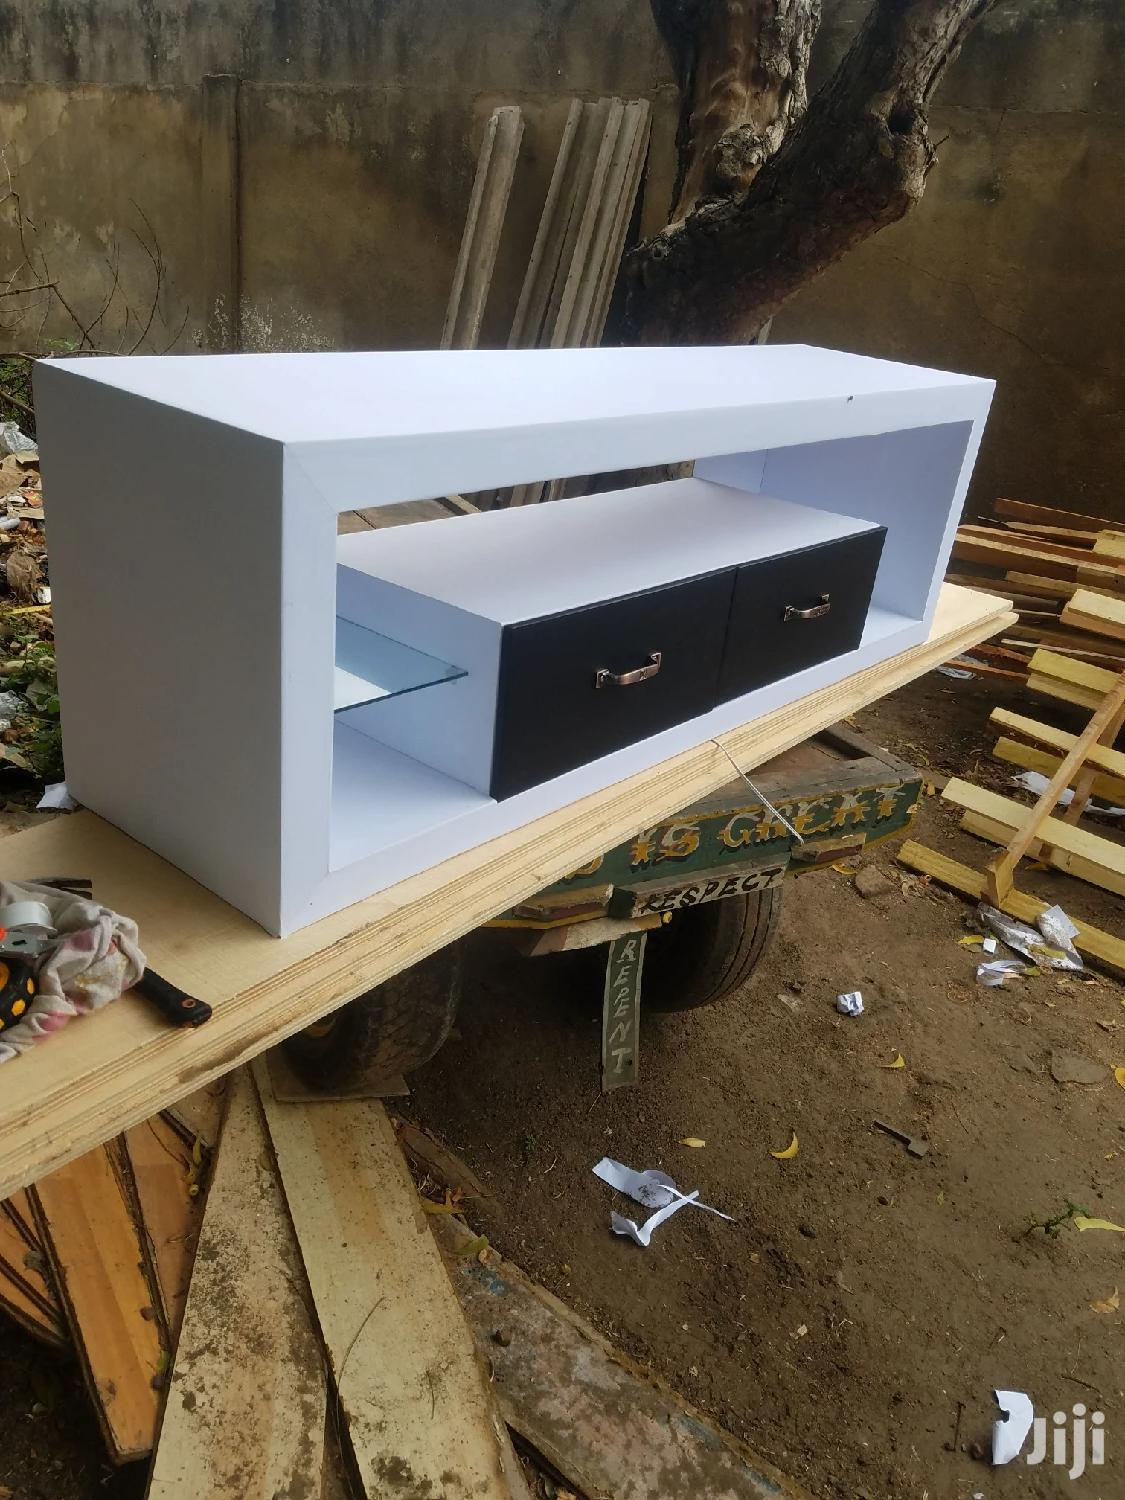 This Is Tv Stand For Sale In Accra New Town Furniture Victor Kojo Jiji Com Gh